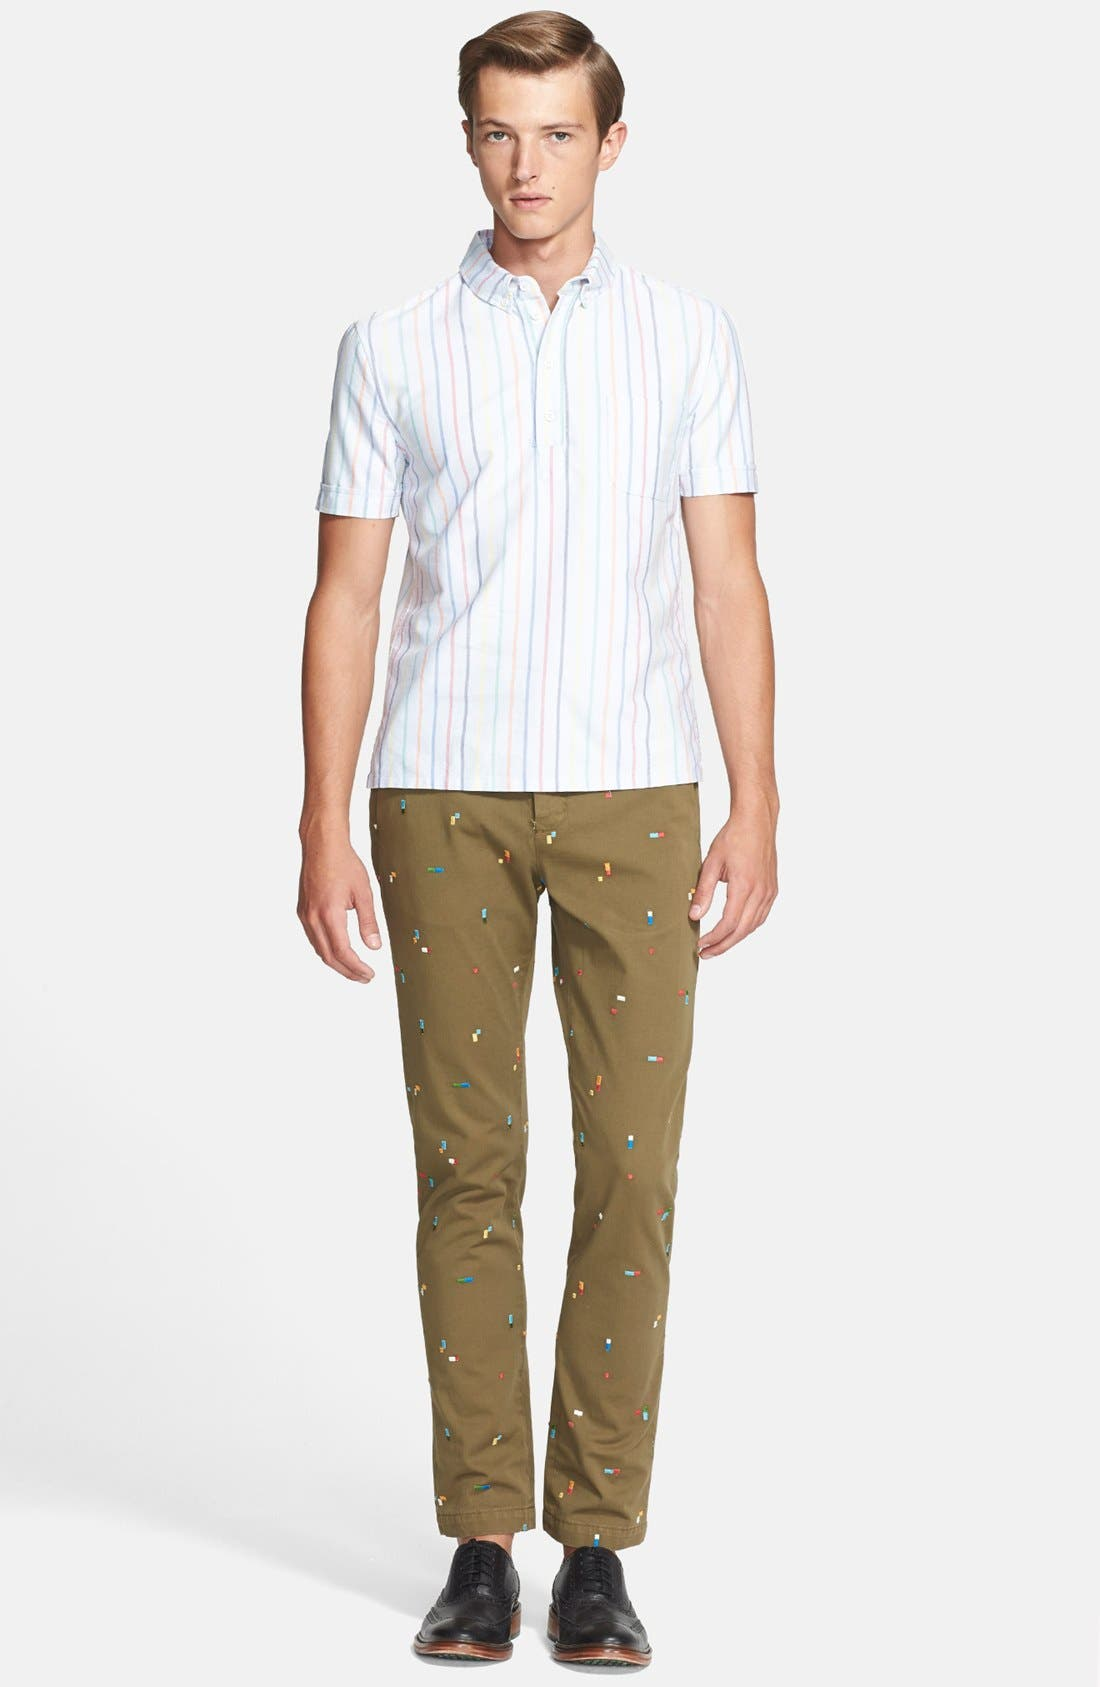 BAND OF OUTSIDERS, Slim Fit Embroidered Chinos, Alternate thumbnail 6, color, 411